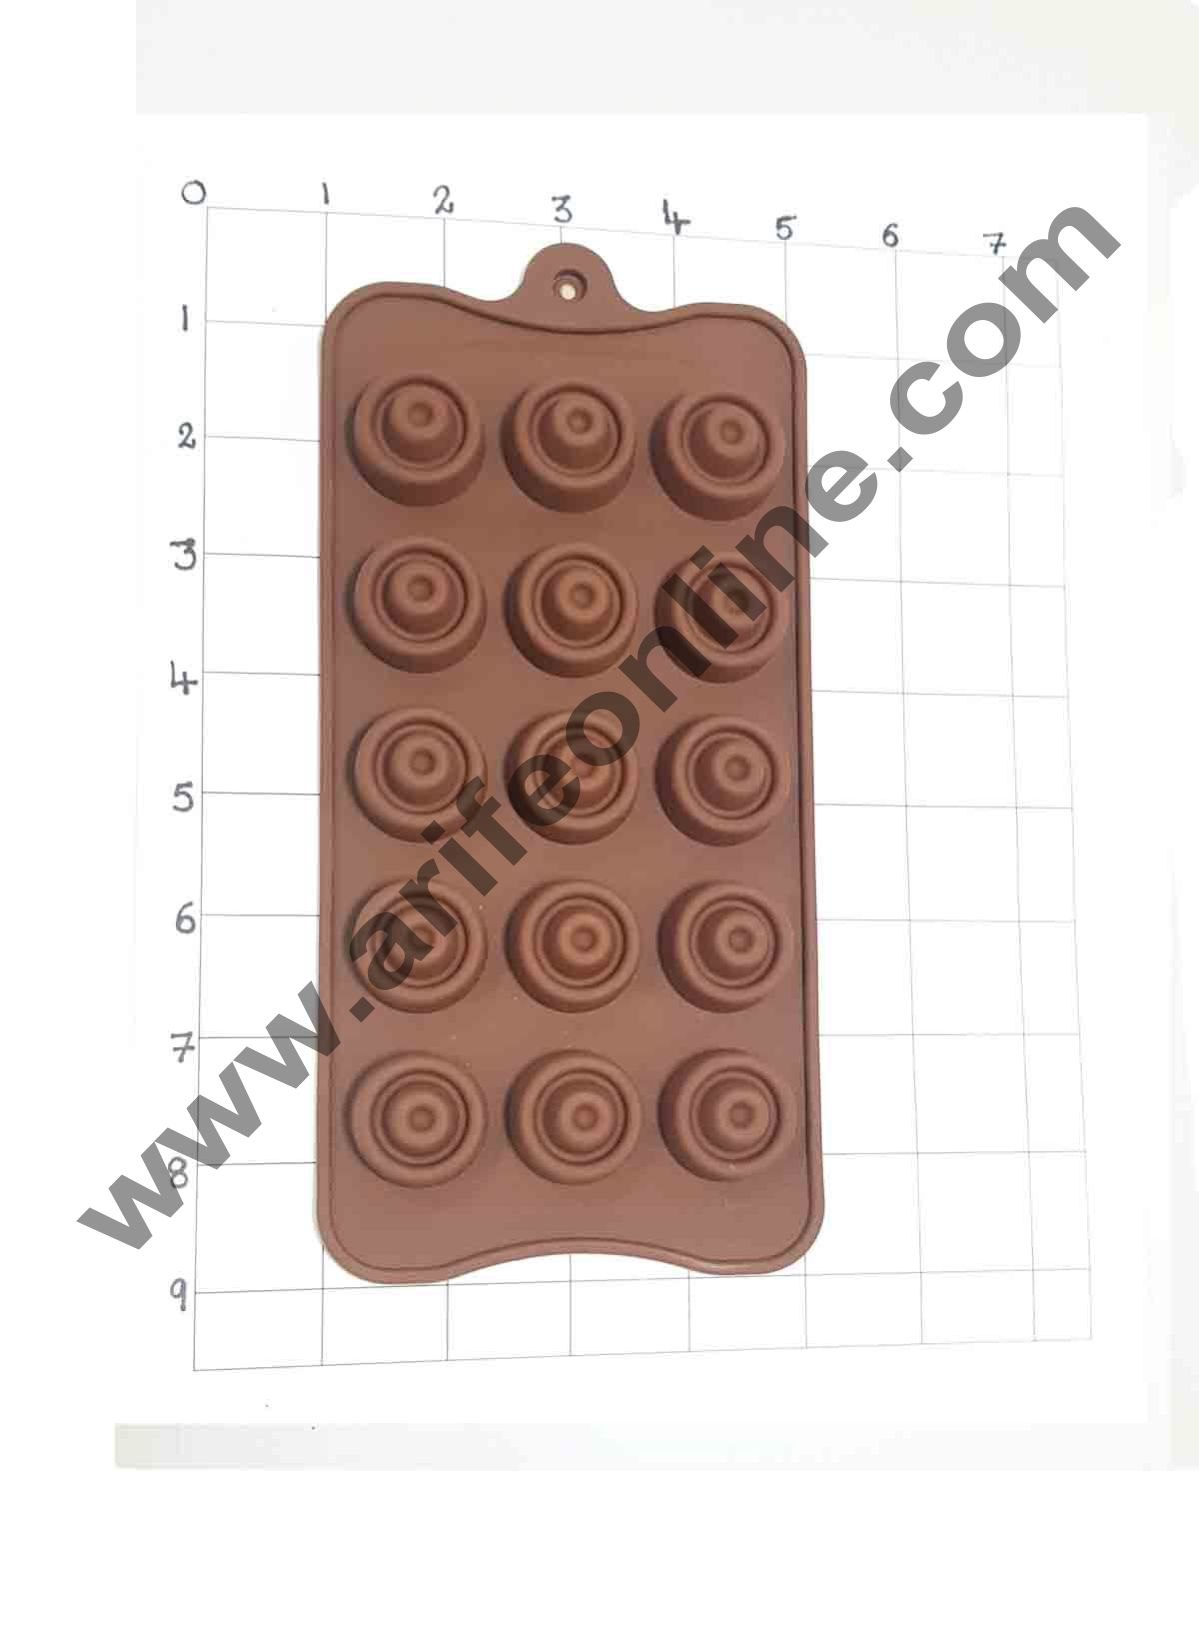 Cake Decor Silicon 15 Cavity Circle Shape Brown Chocolate Mould, Ice Mould, Chocolate Decorating Mould